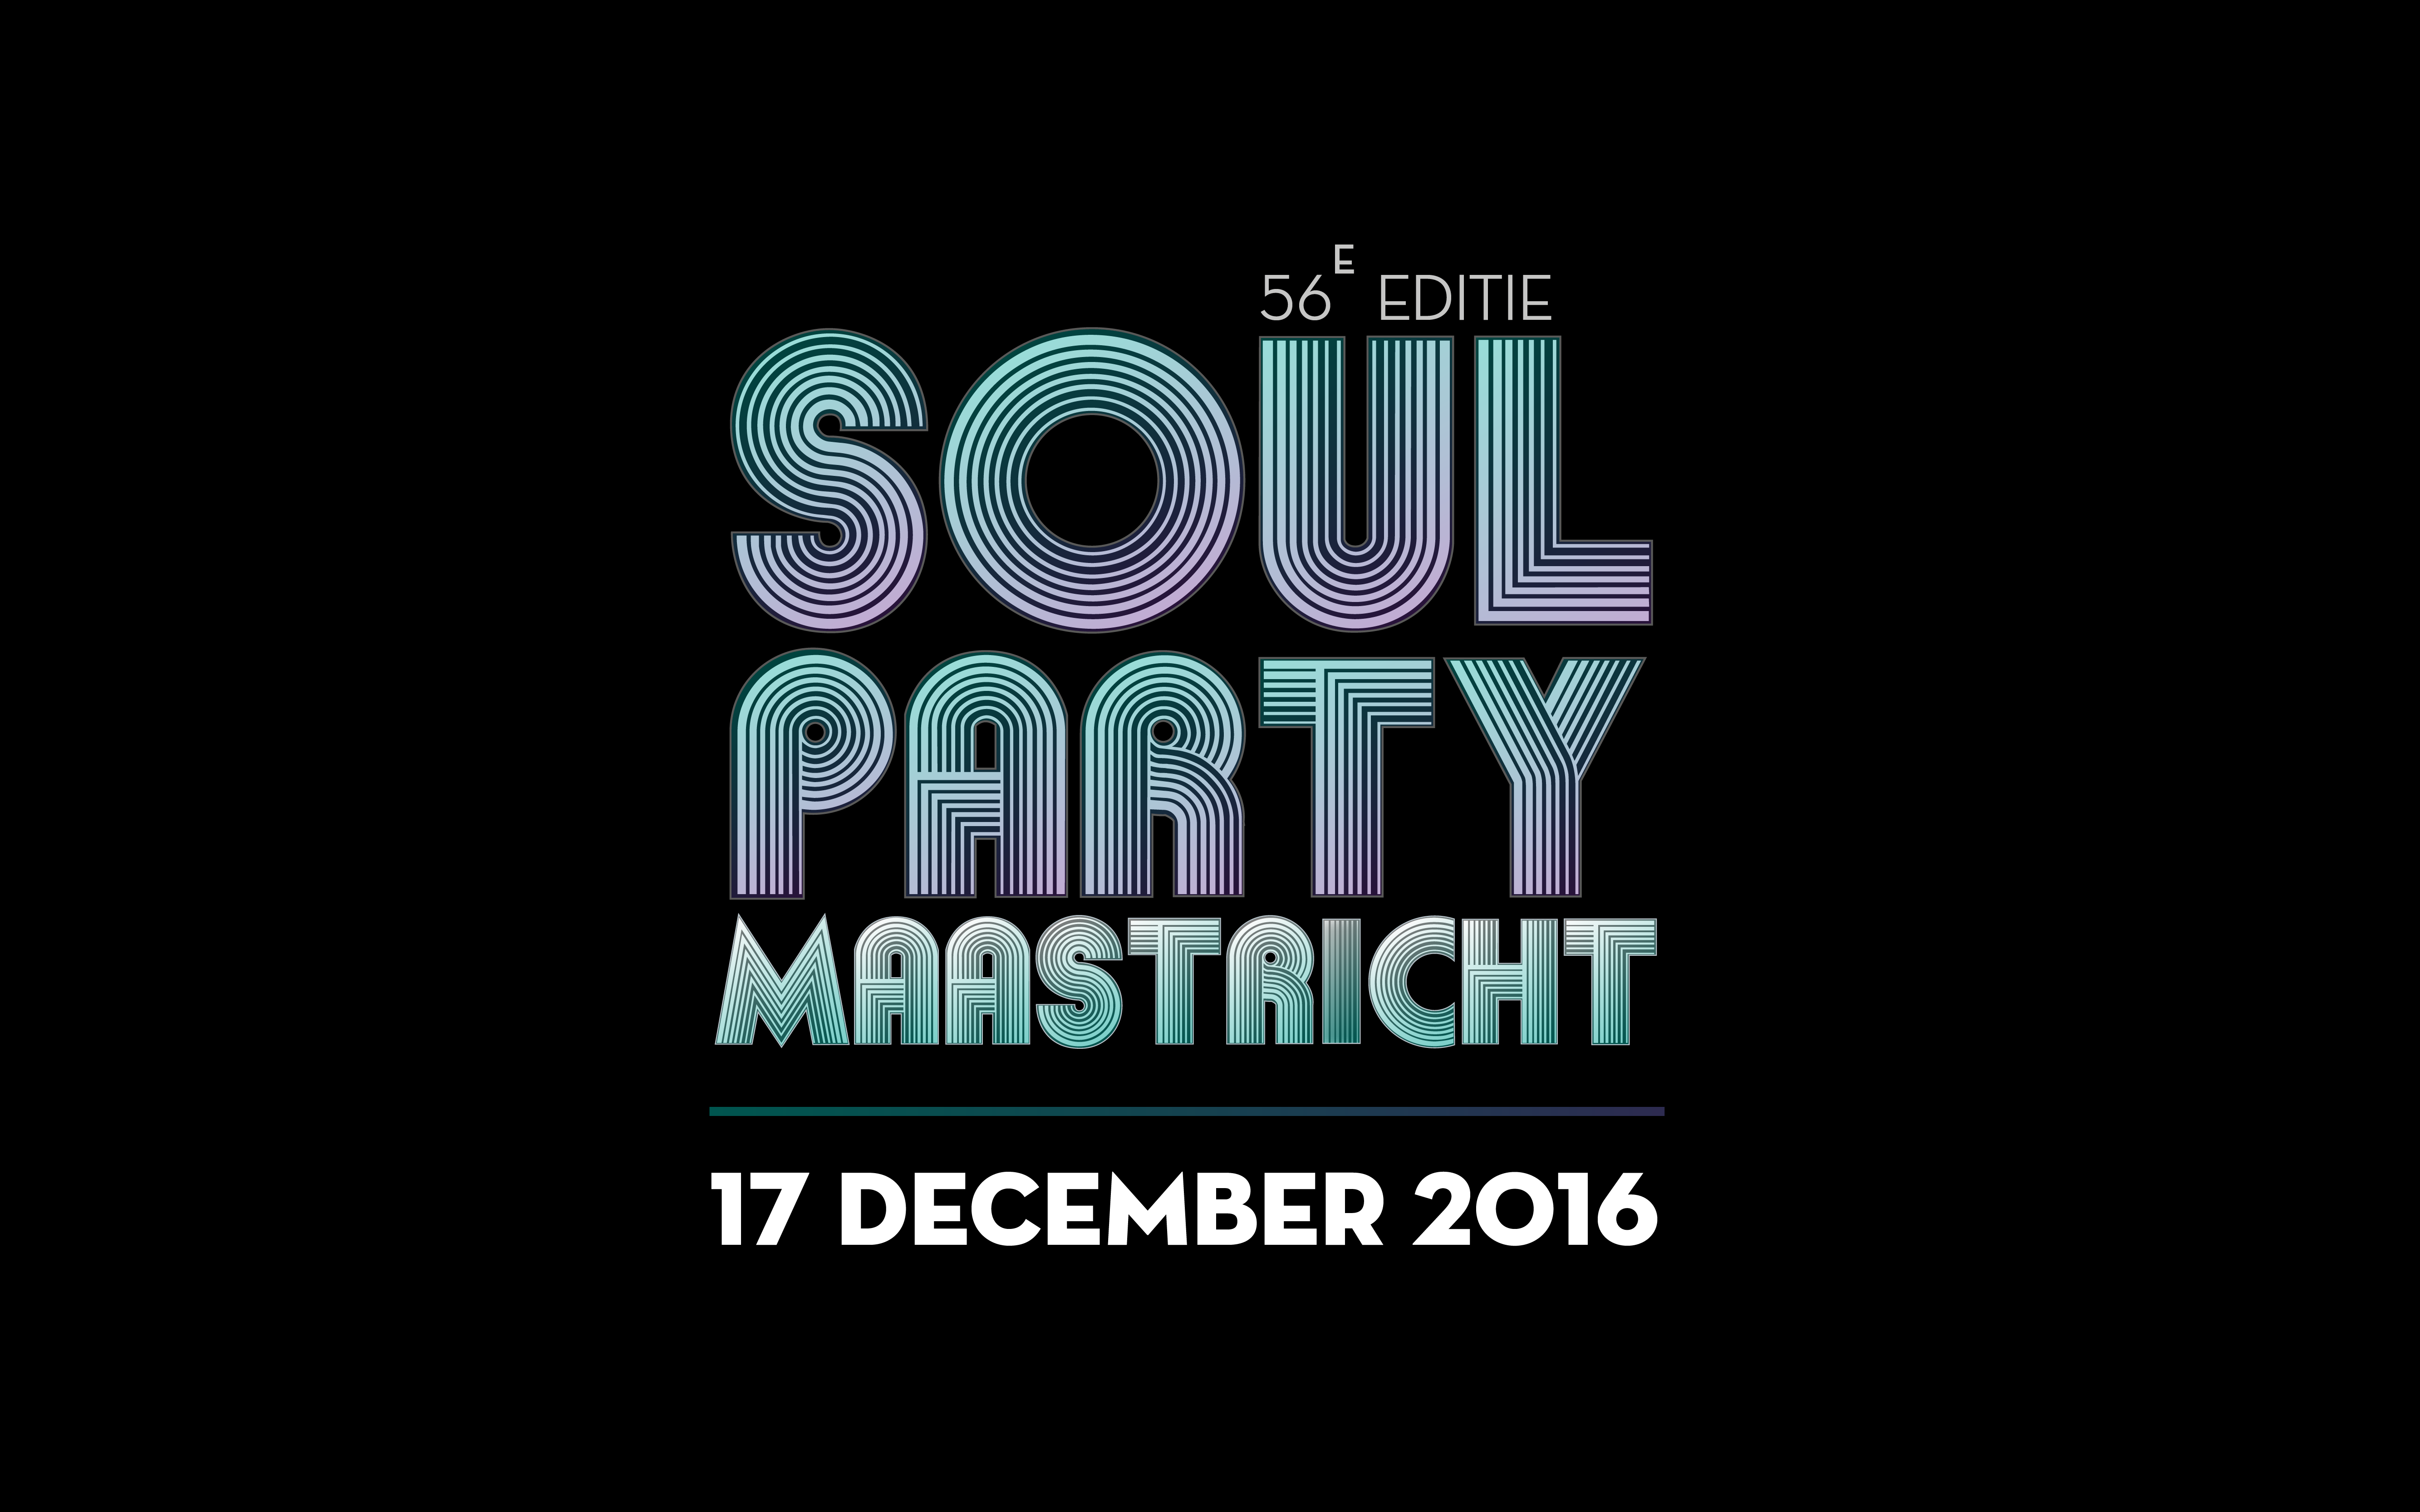 Soulparty 17 december 2016